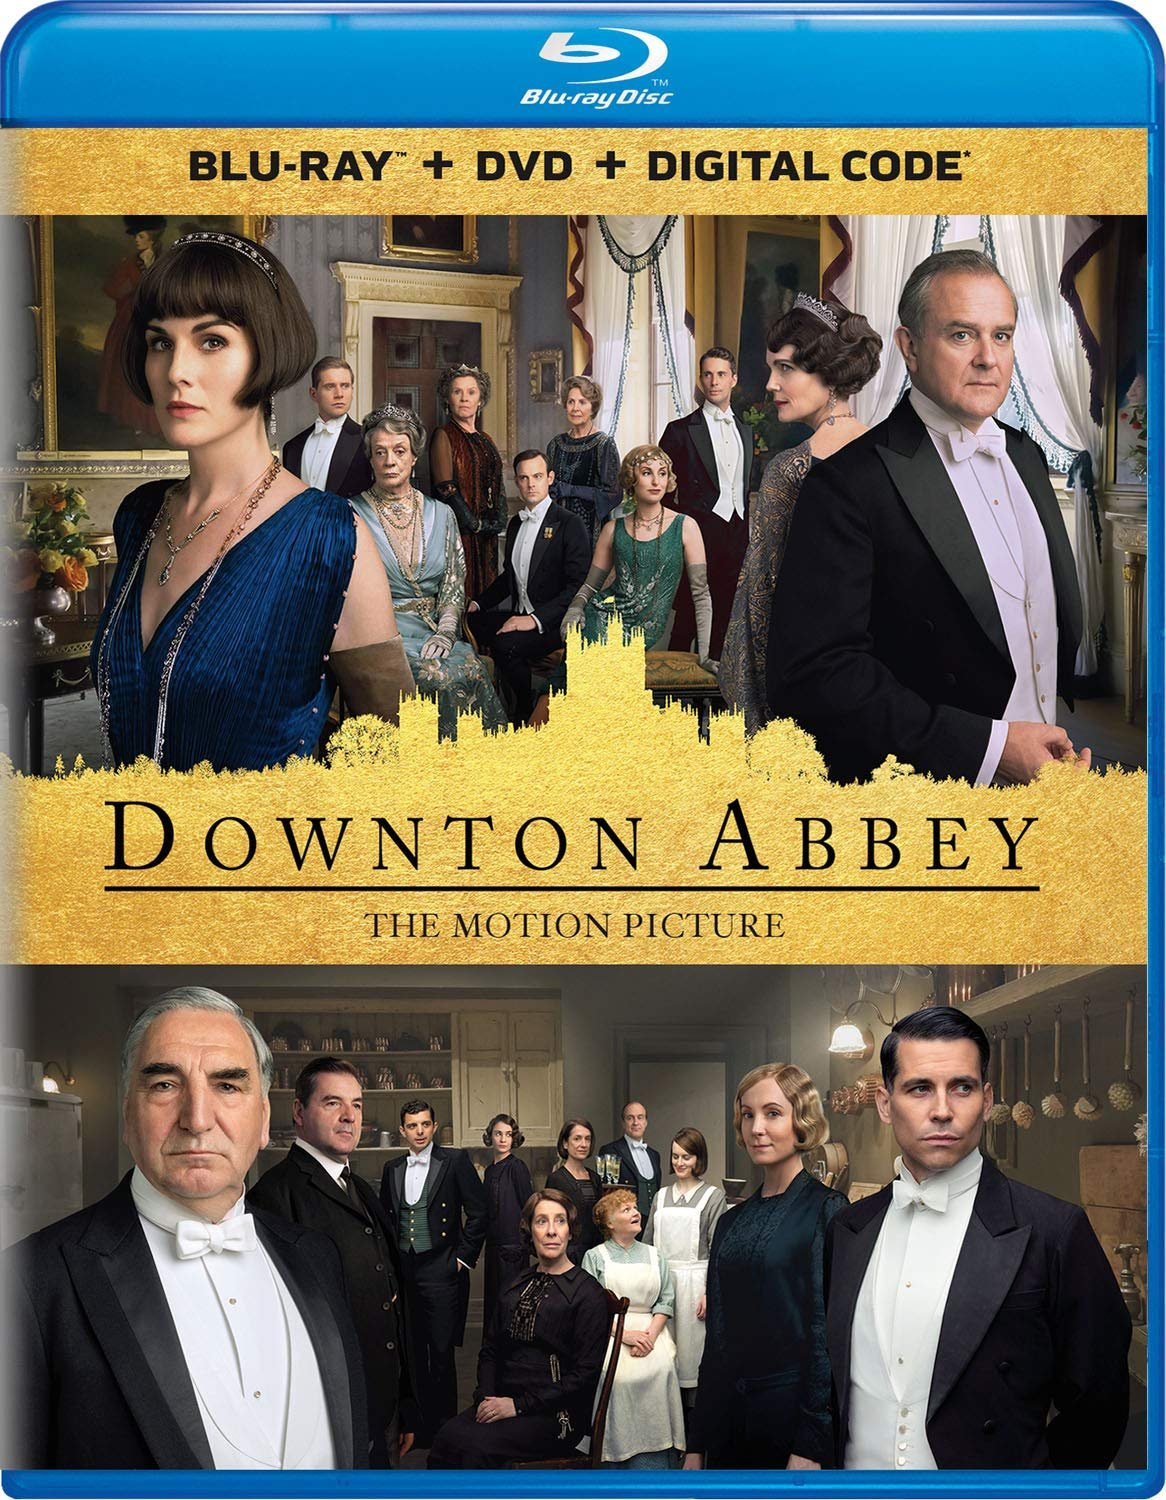 Downton Abbey (2019) poster image